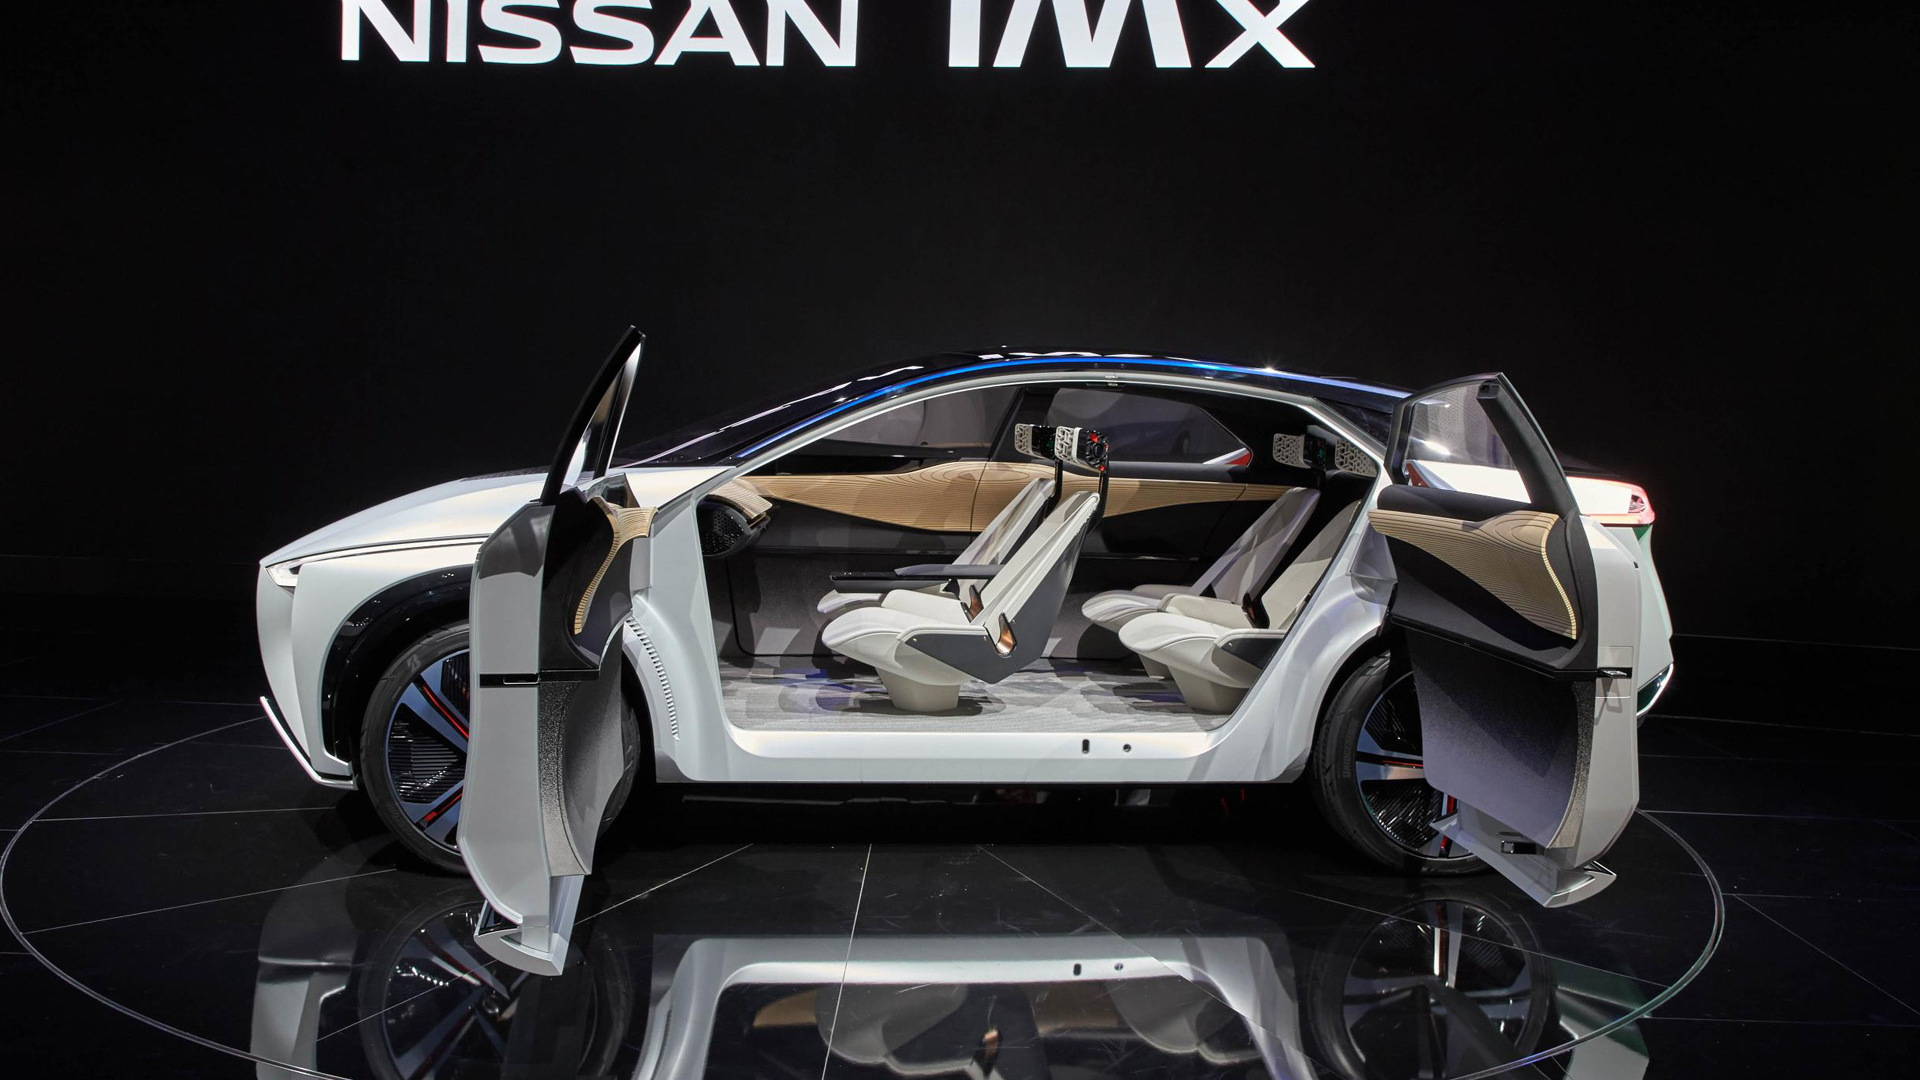 Nissan Imx 2021 Research New